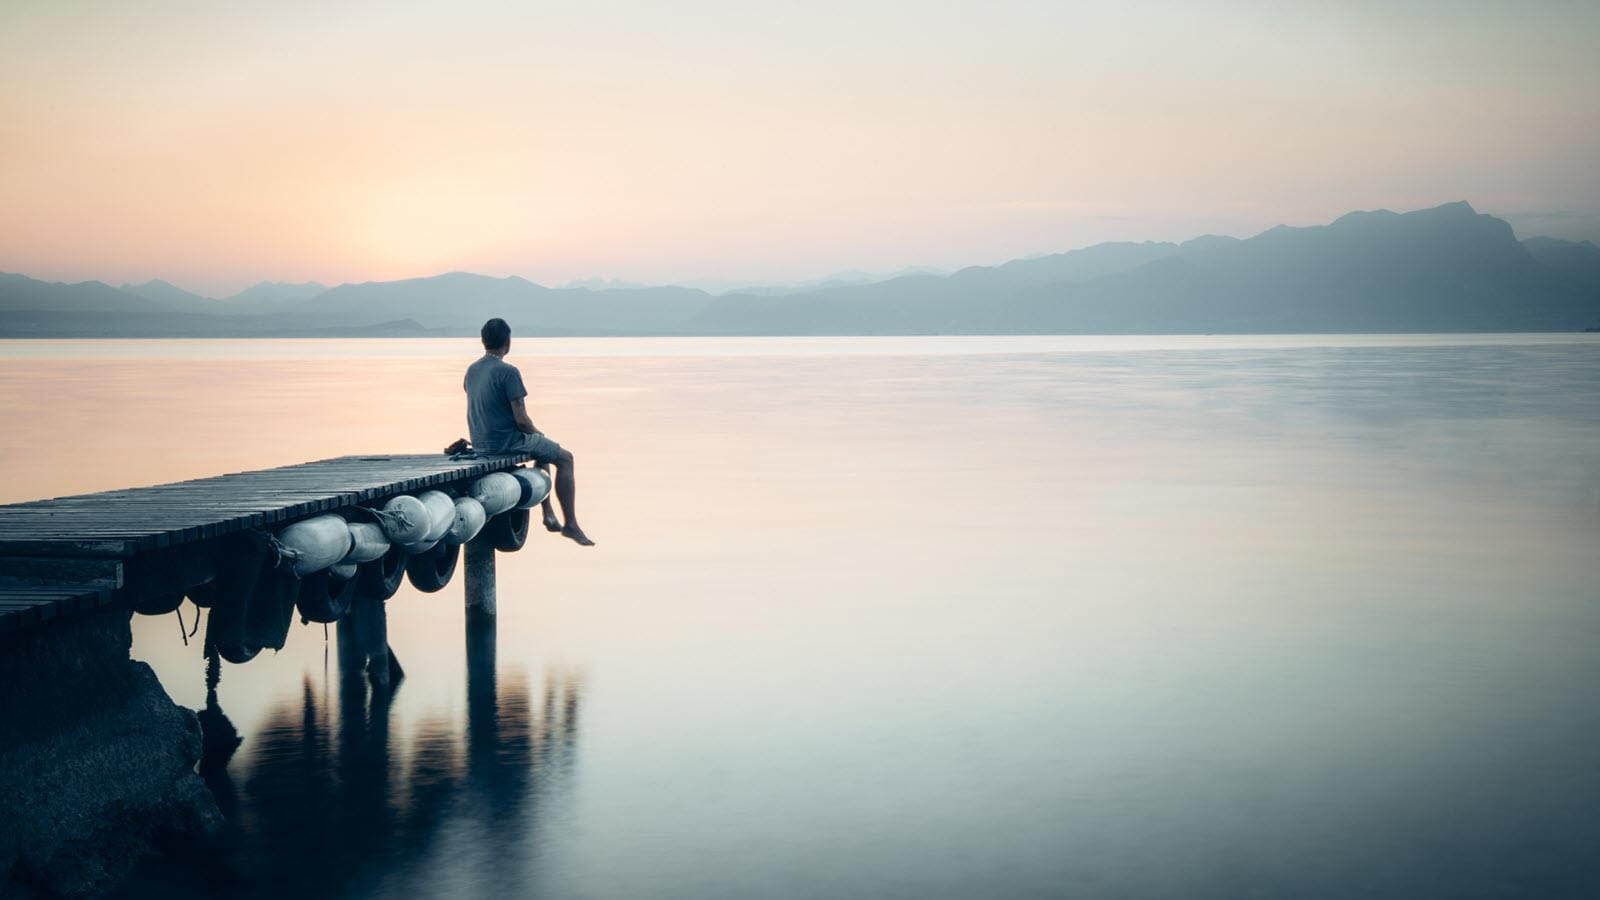 man at the end of a dock on a lake